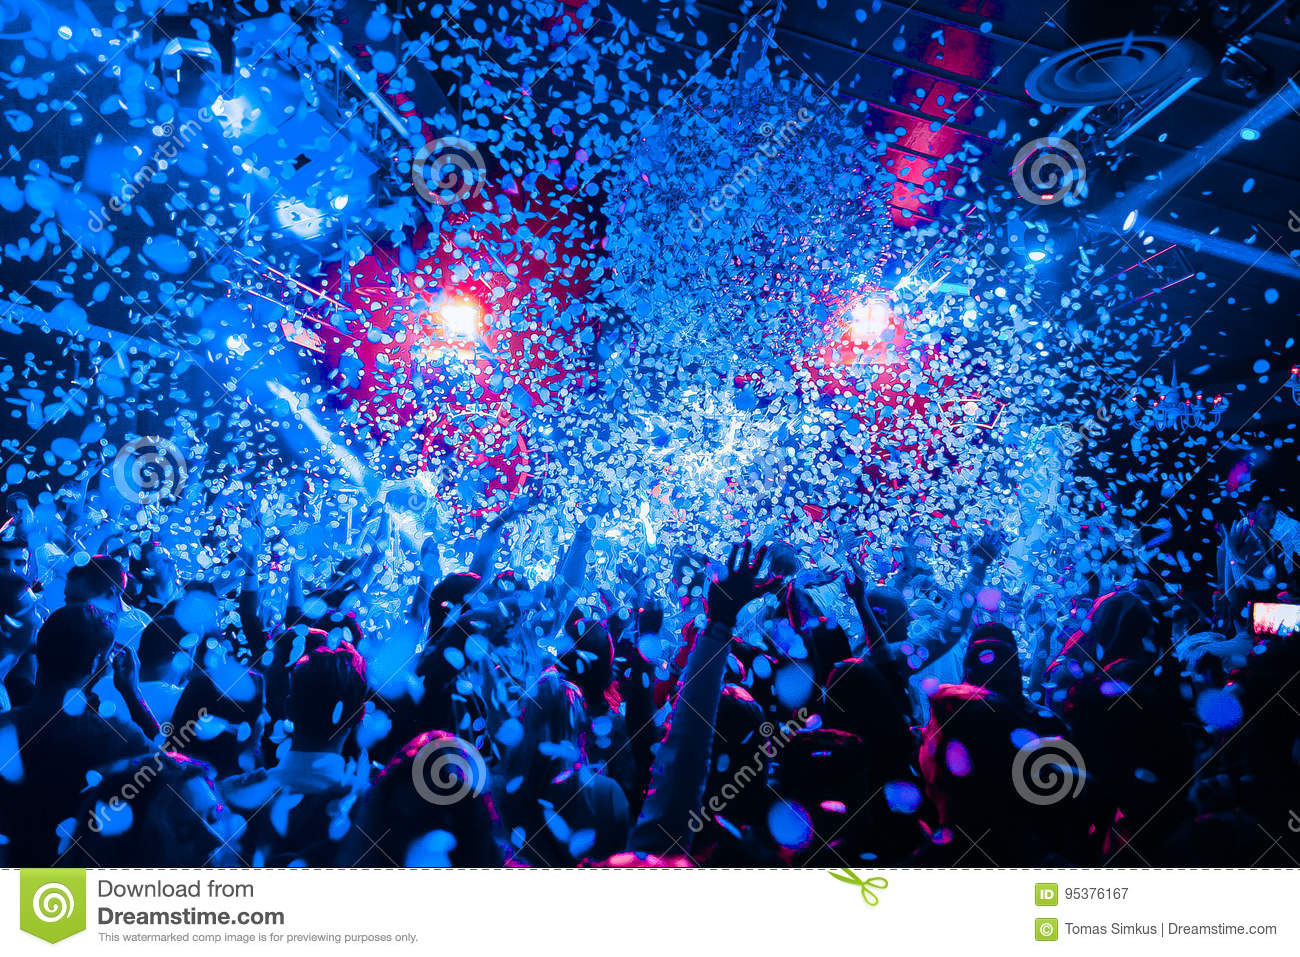 Night club silhouette crowd hands up at confetti steam stage